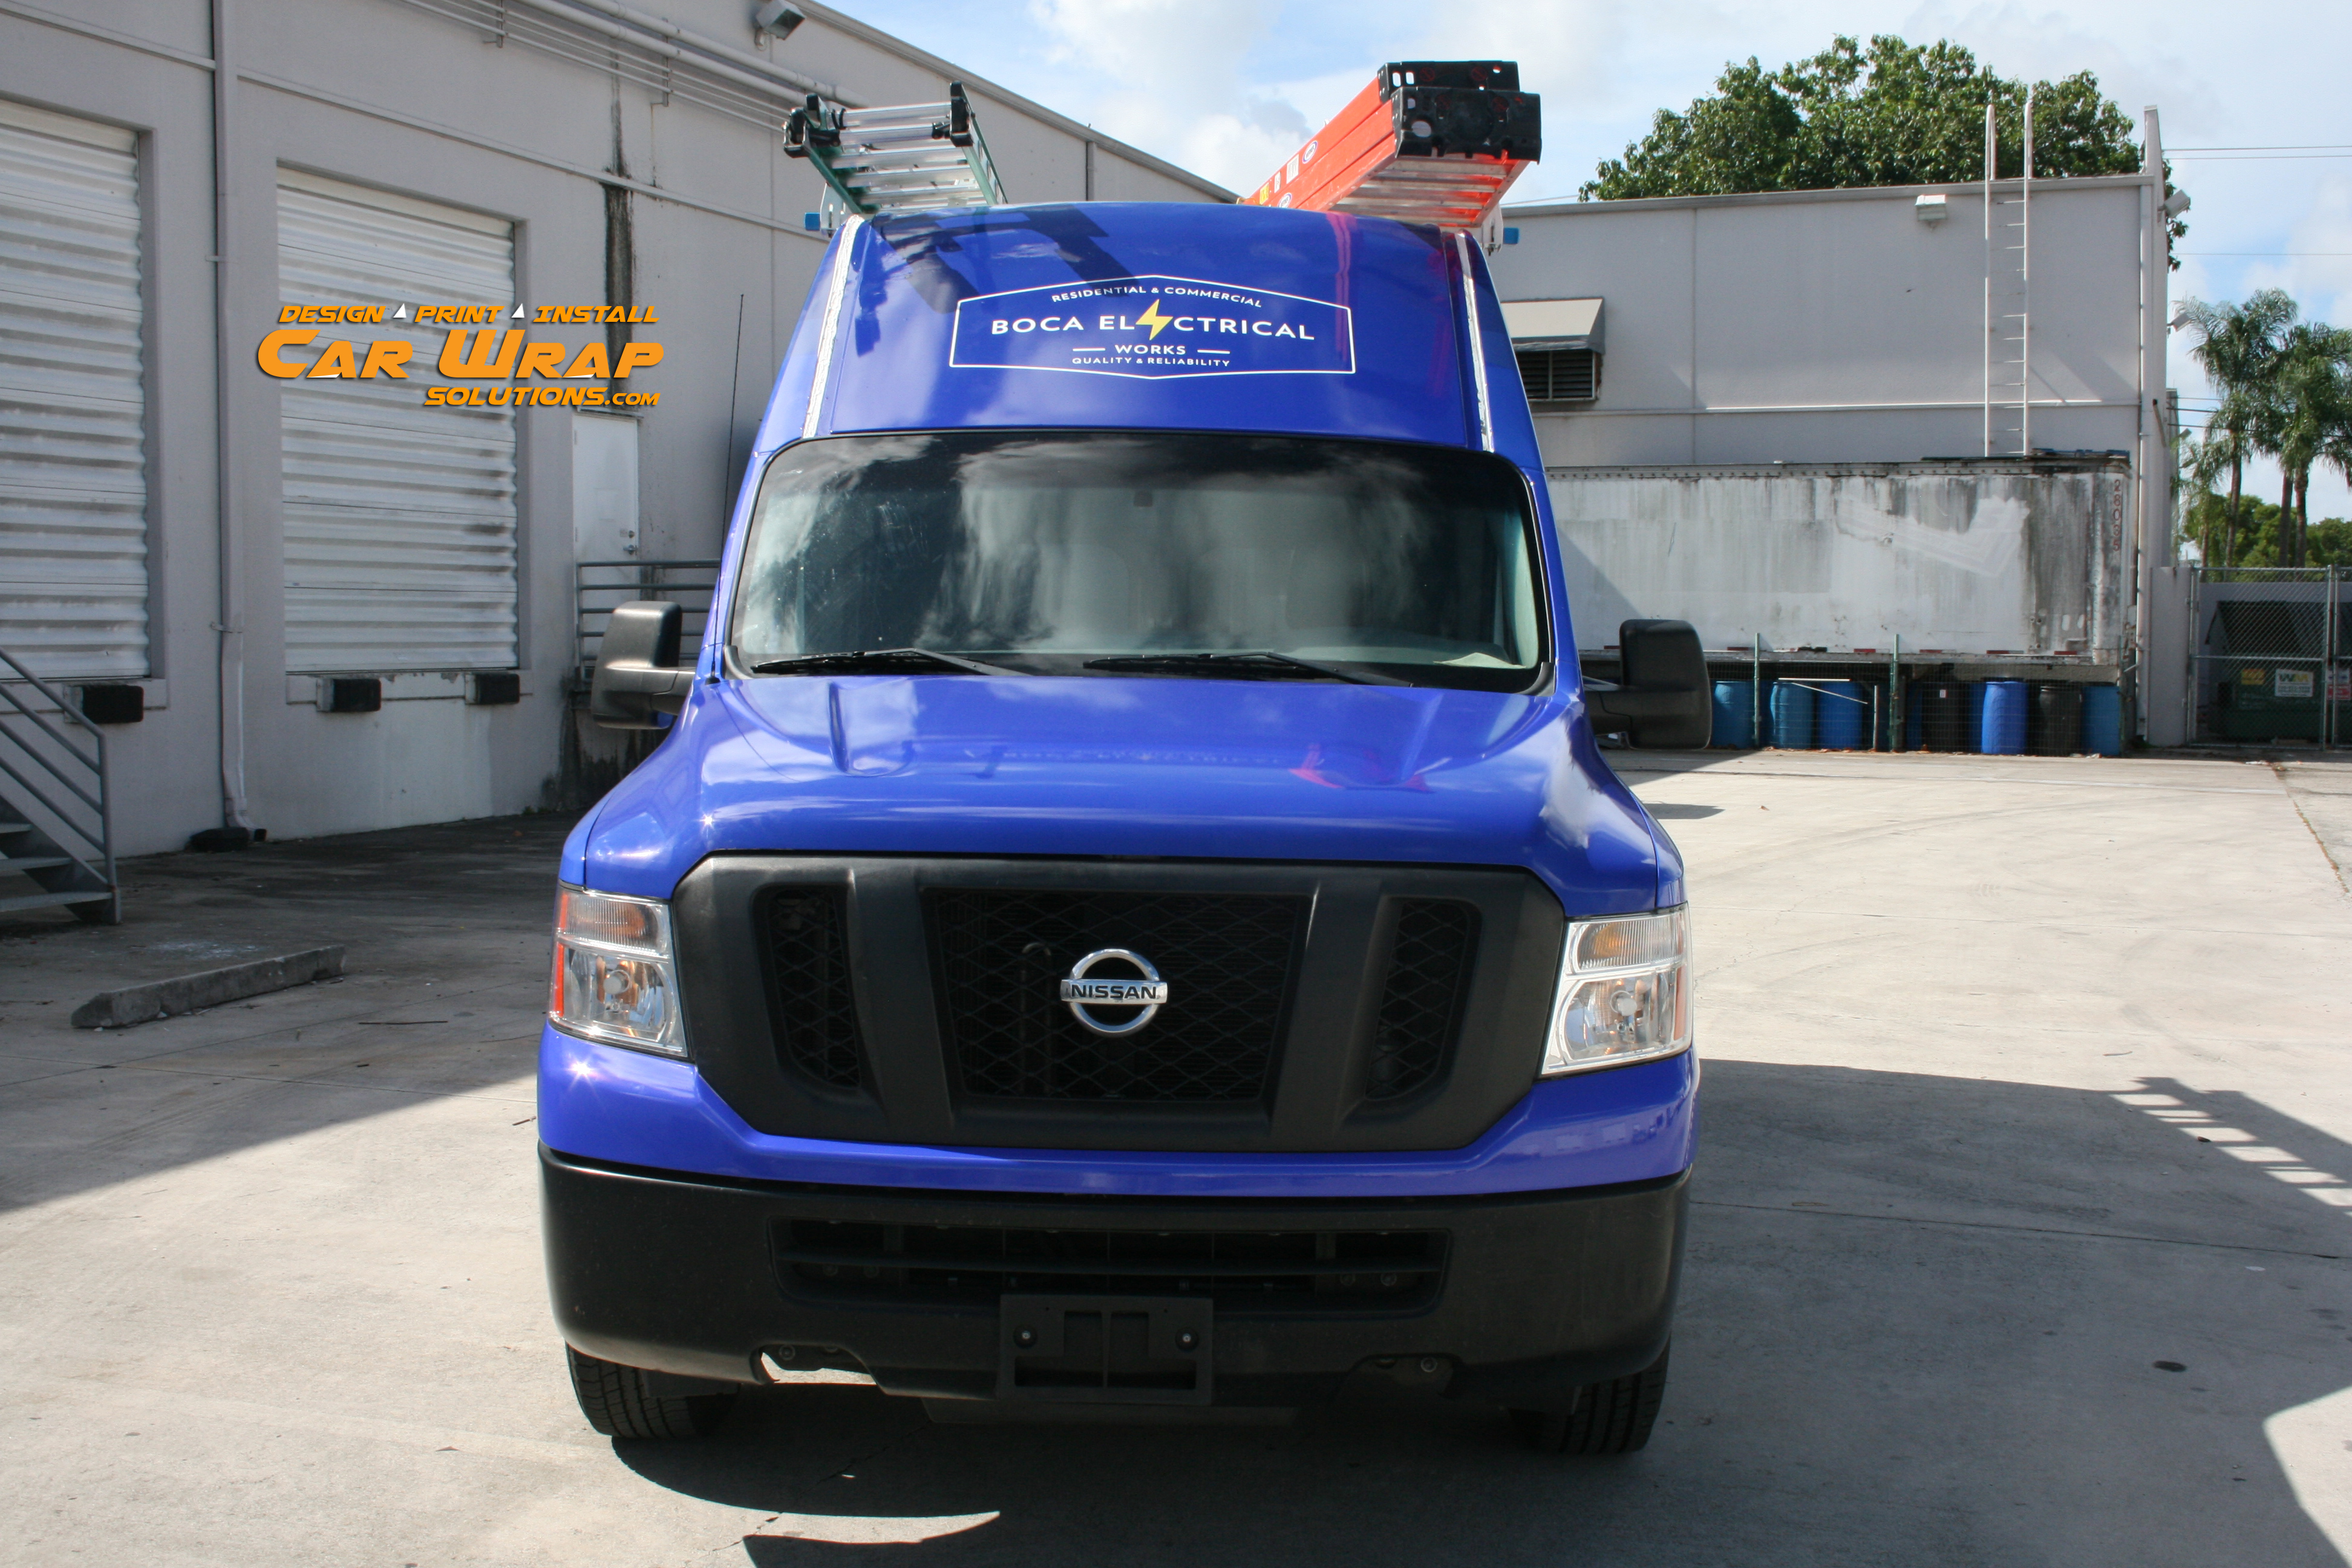 Car Wrap Solutions Nissan NV Van Car Wrap Boca Raton Florida